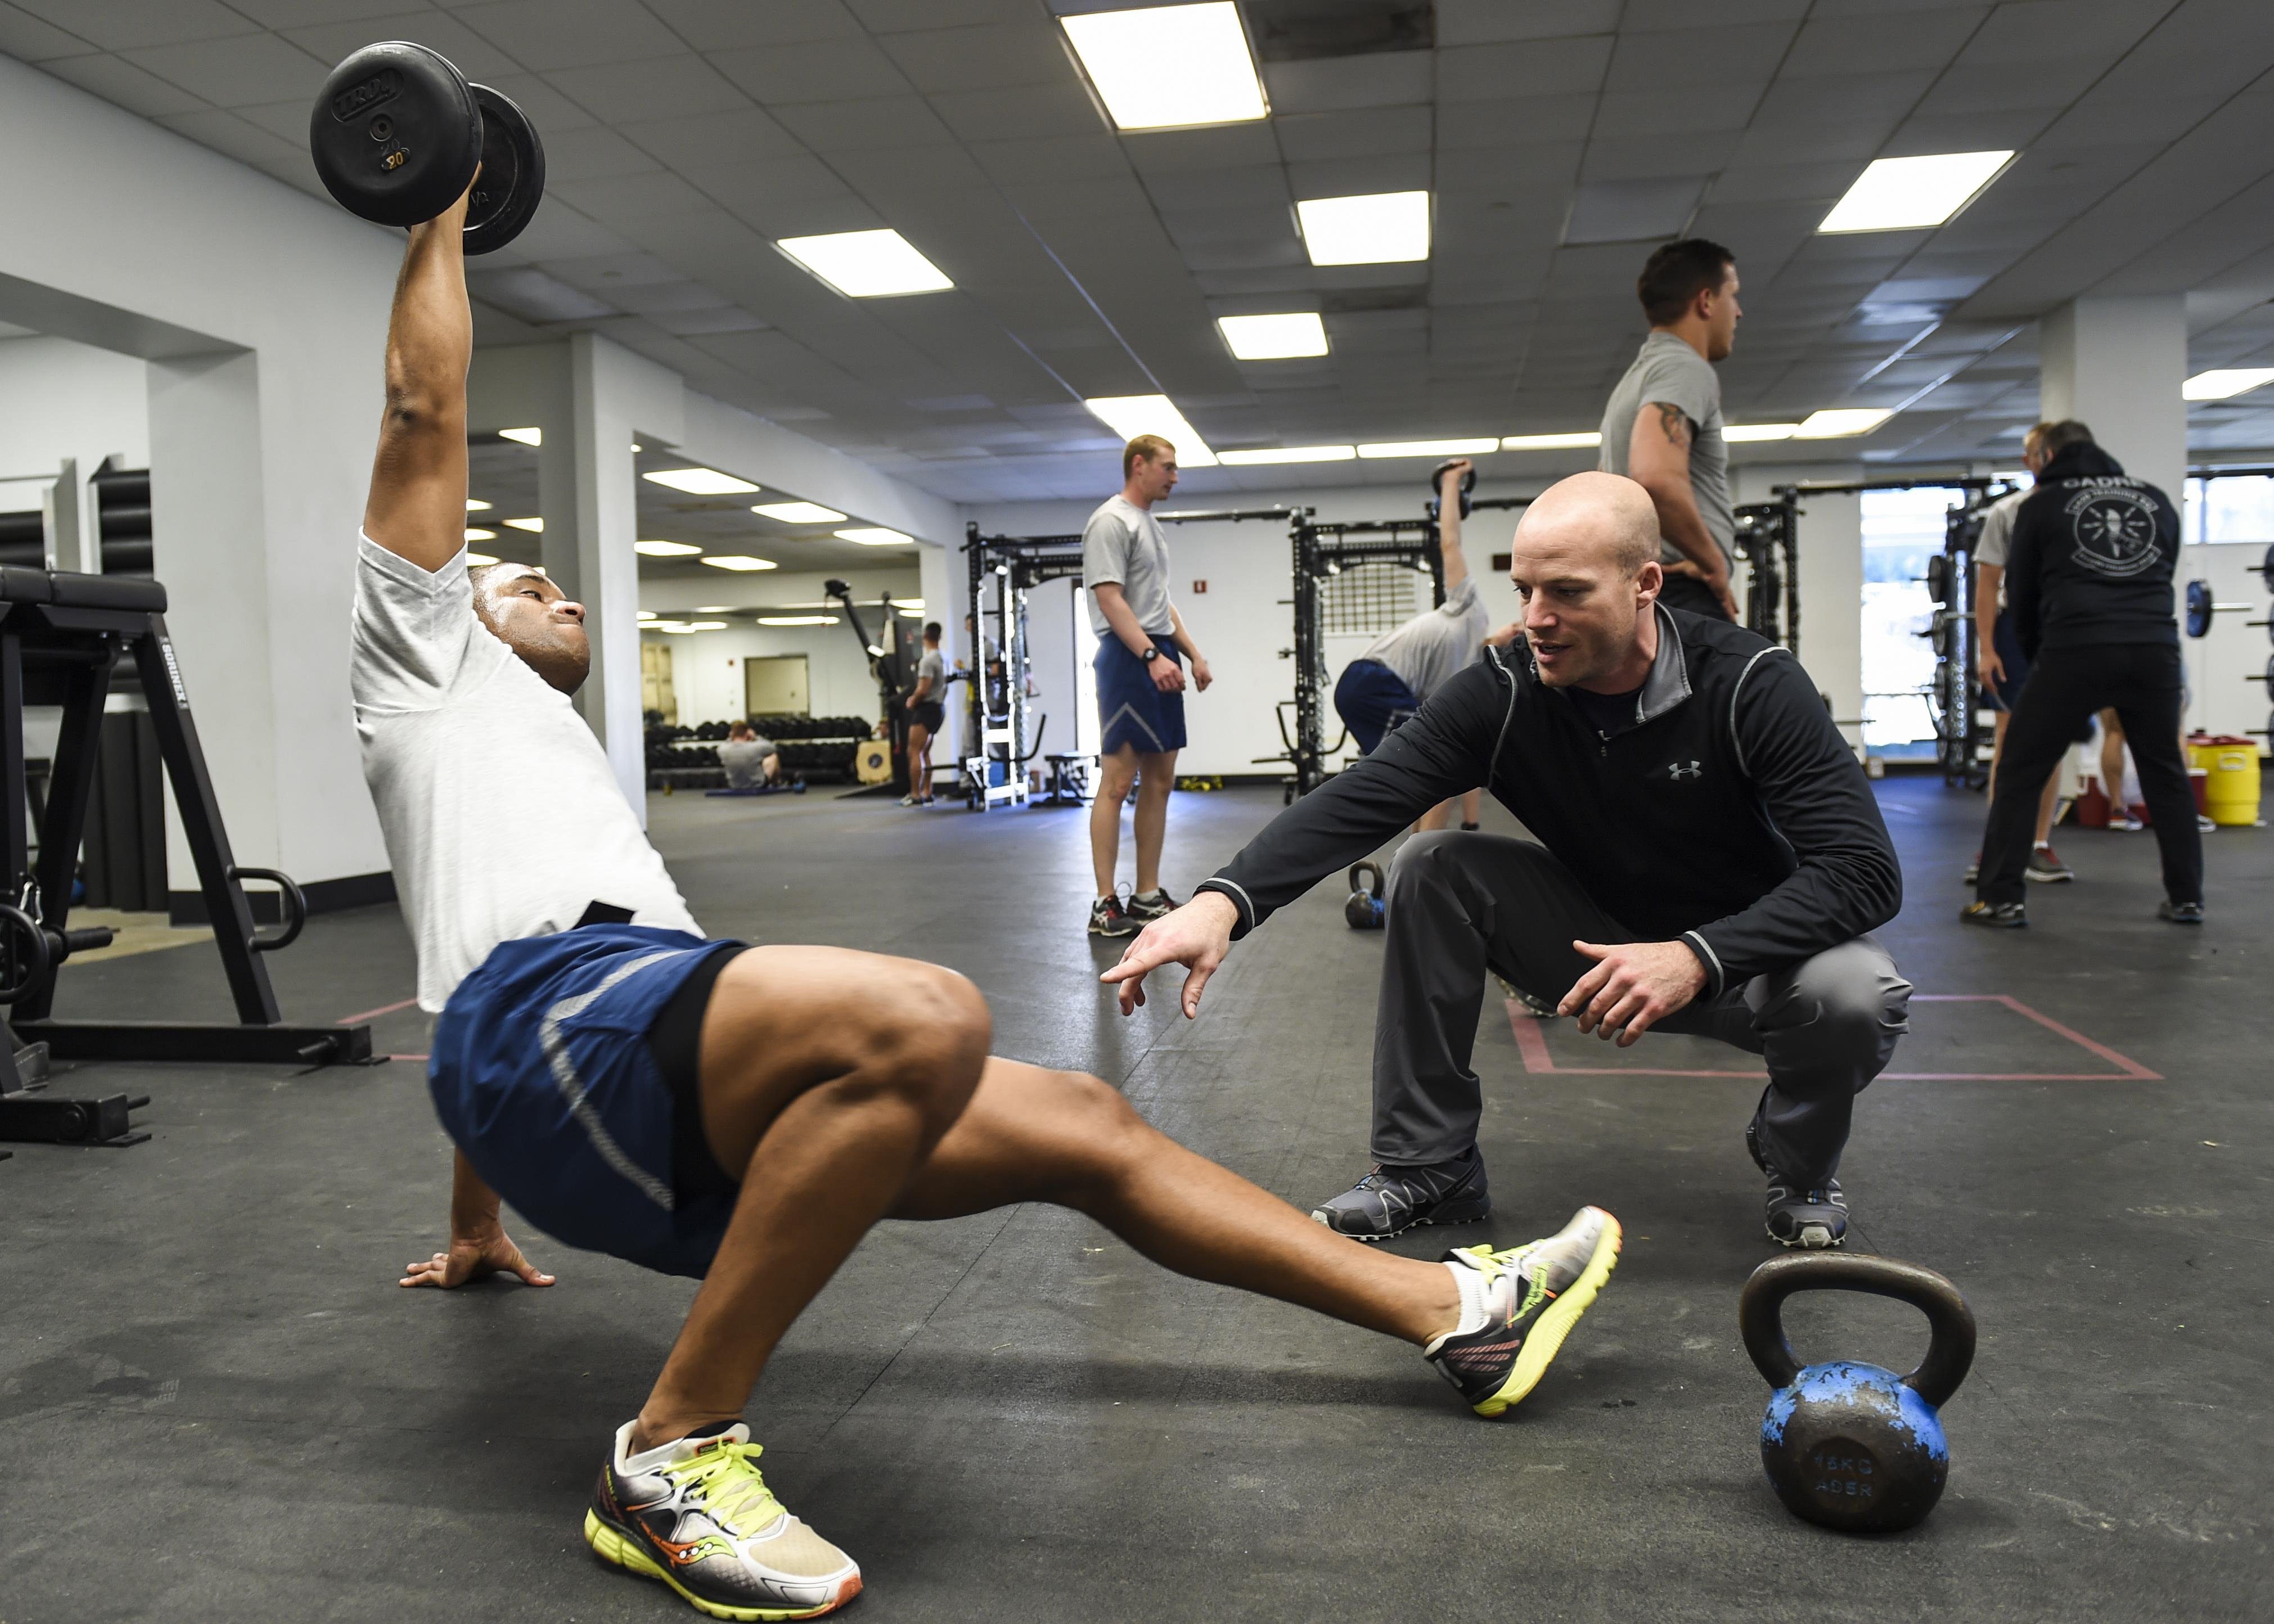 Viper Clinic Program Aims To Reduce Af Physical Training